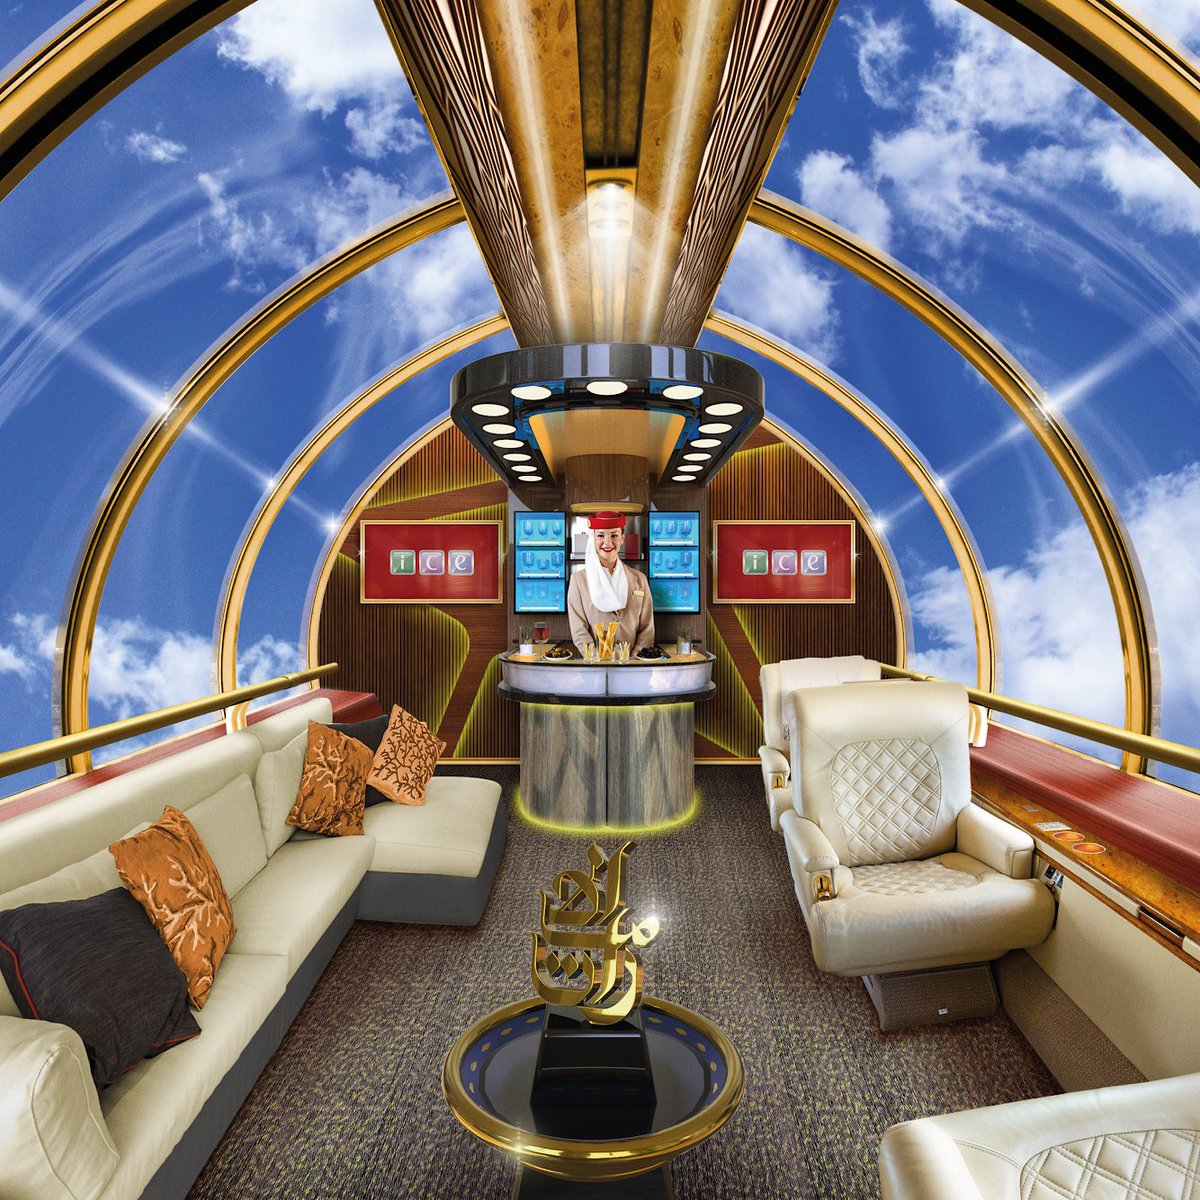 Emirates airline introduce swimming pool, see-through lounge aboard aircrafts